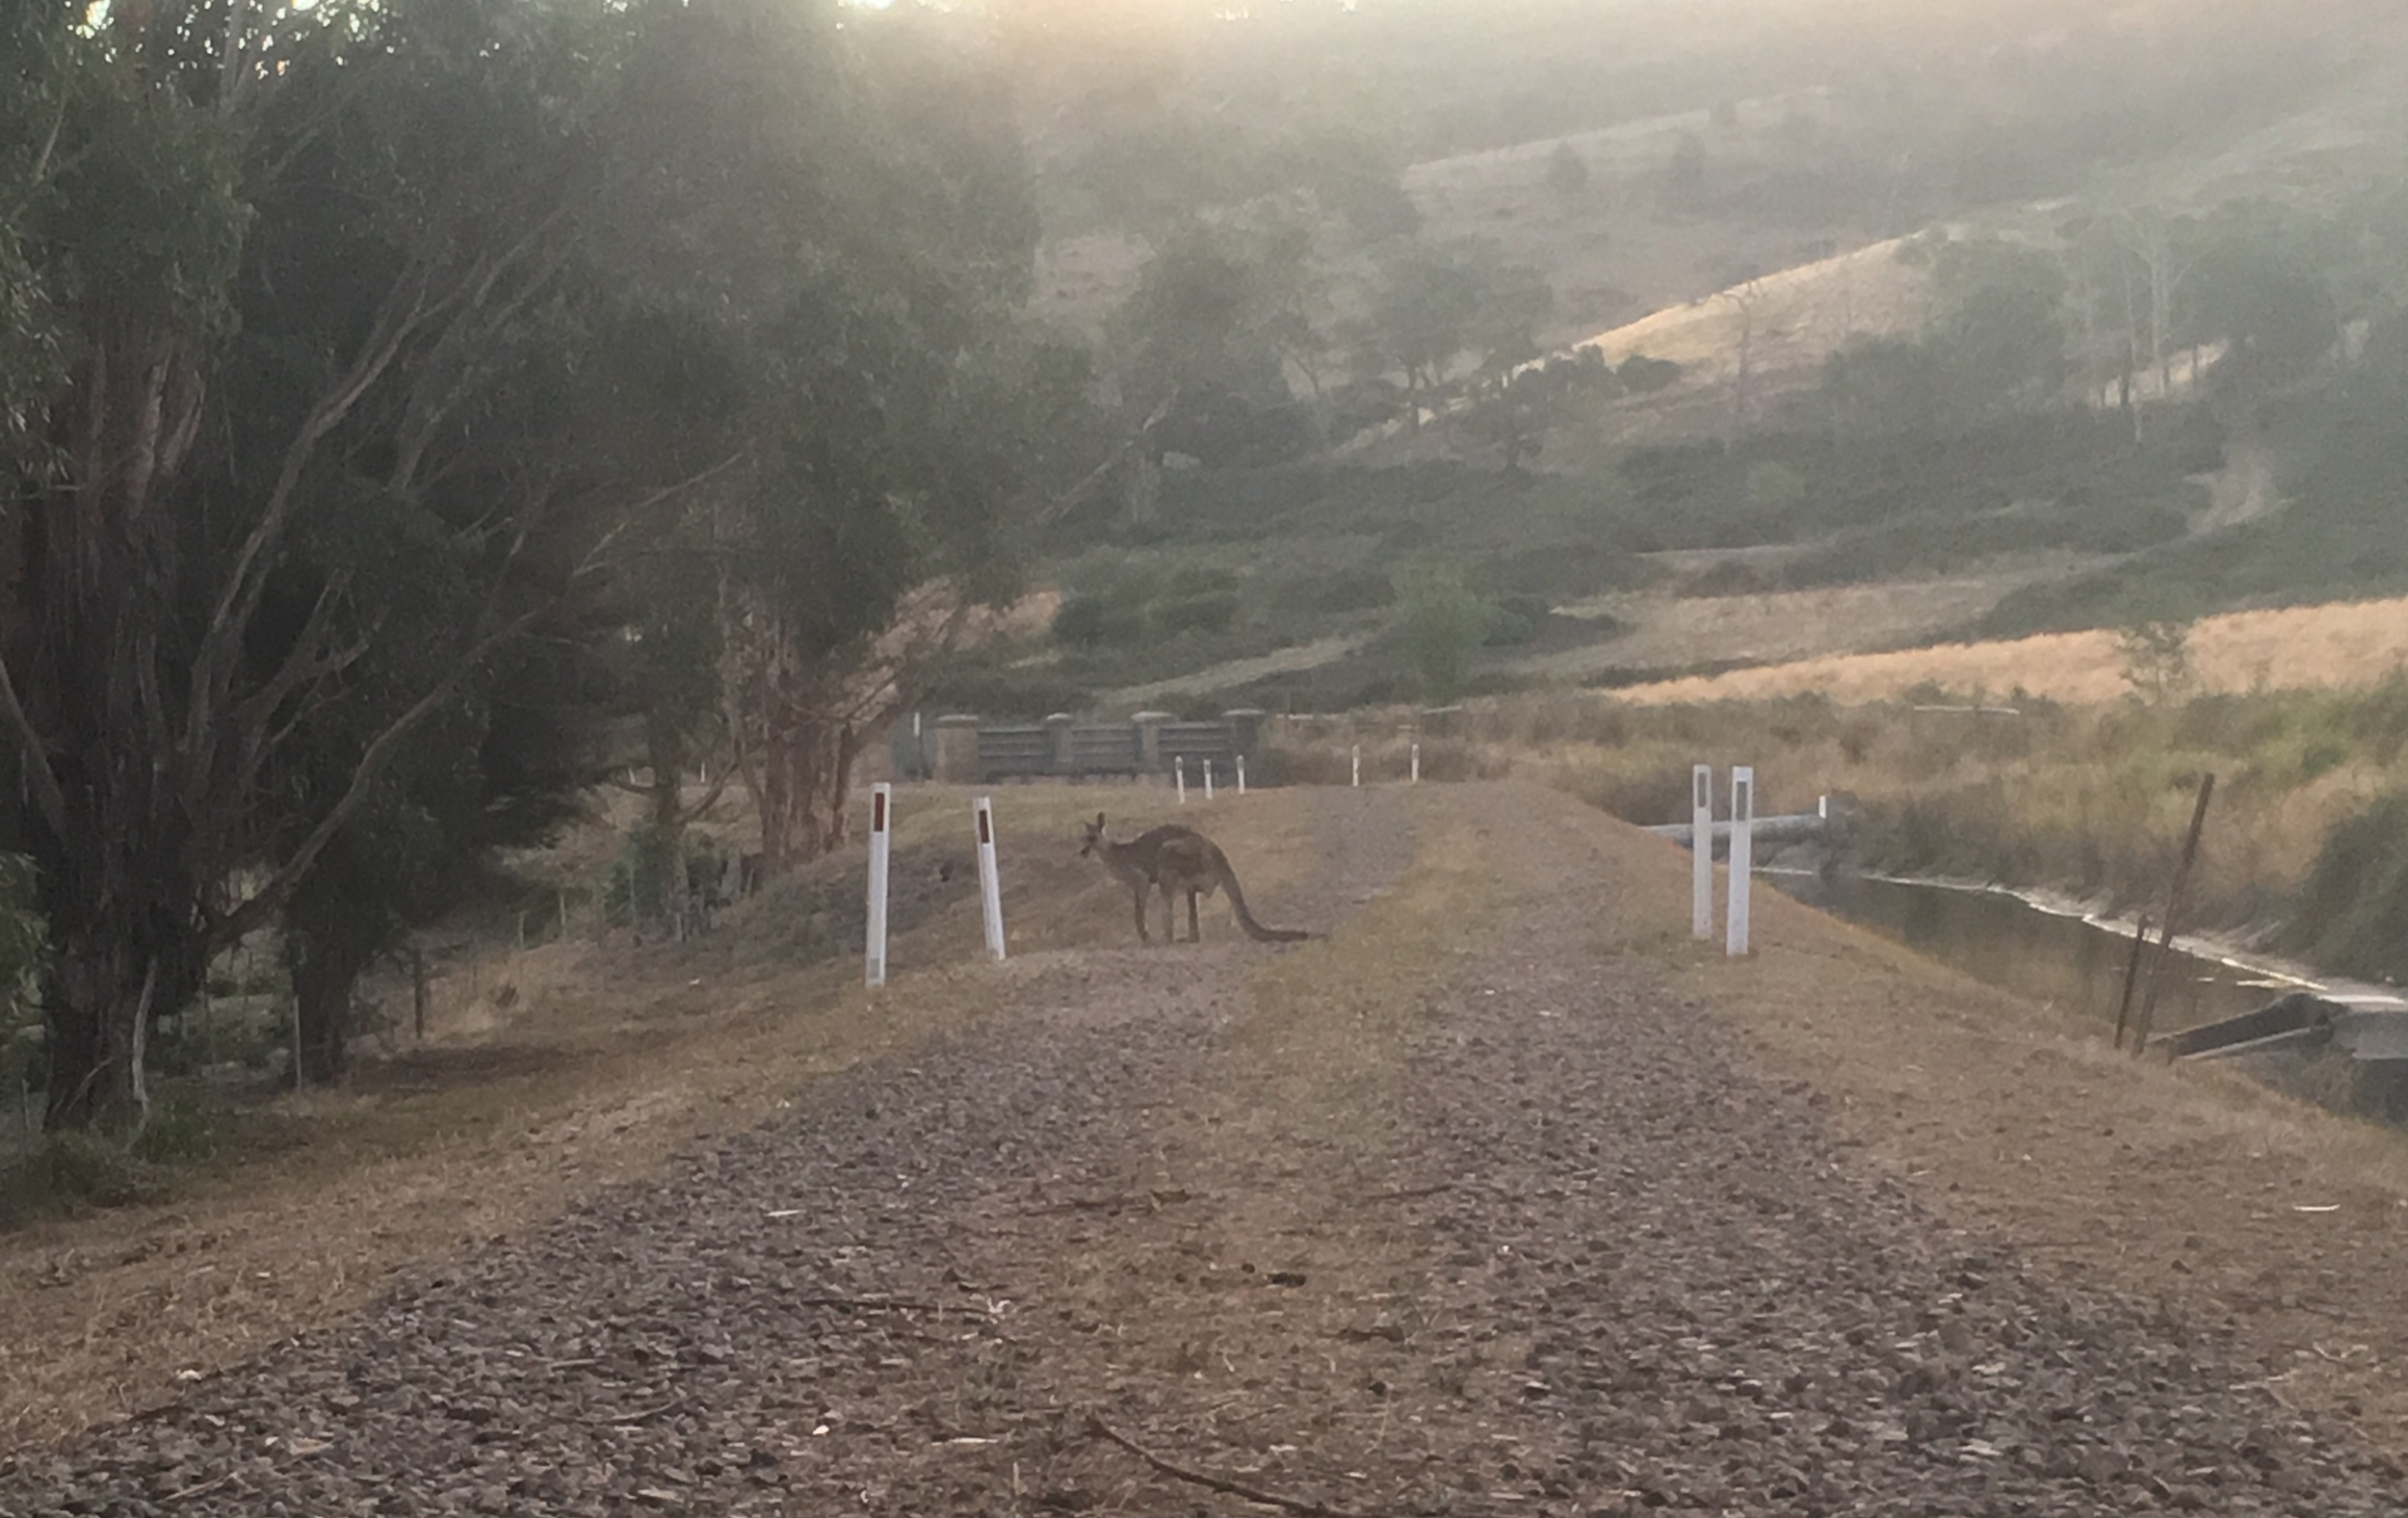 Why did the kangaroo cross the road?